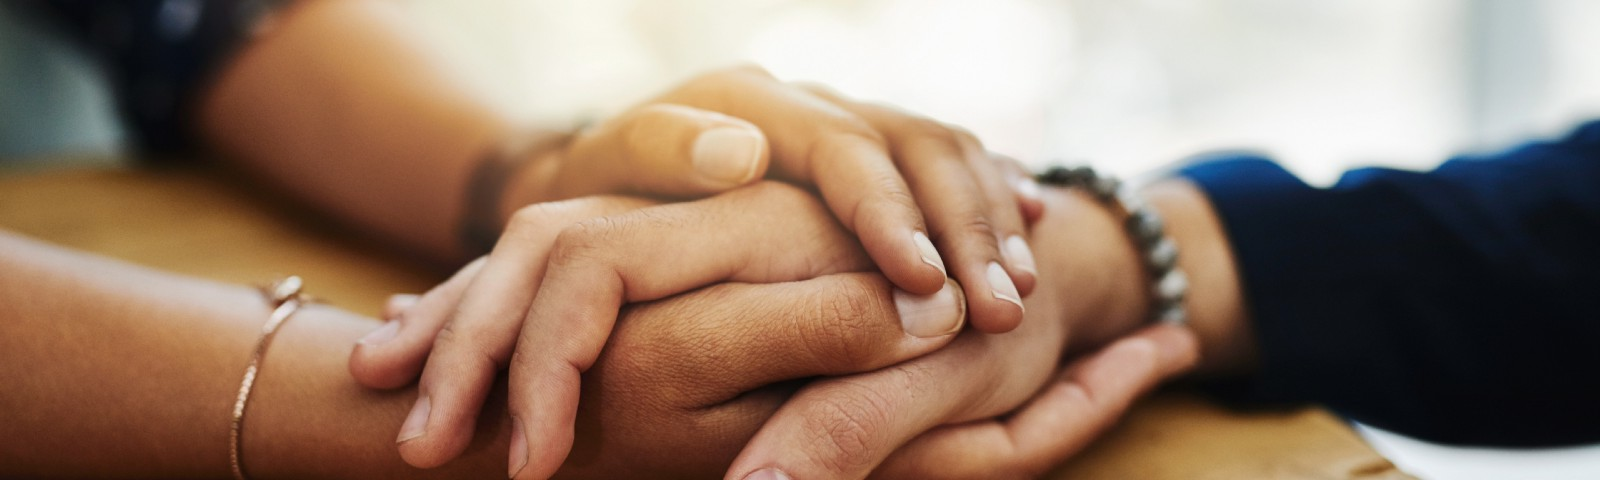 A closeup shot of two unrecognizable people holding hands in comfort